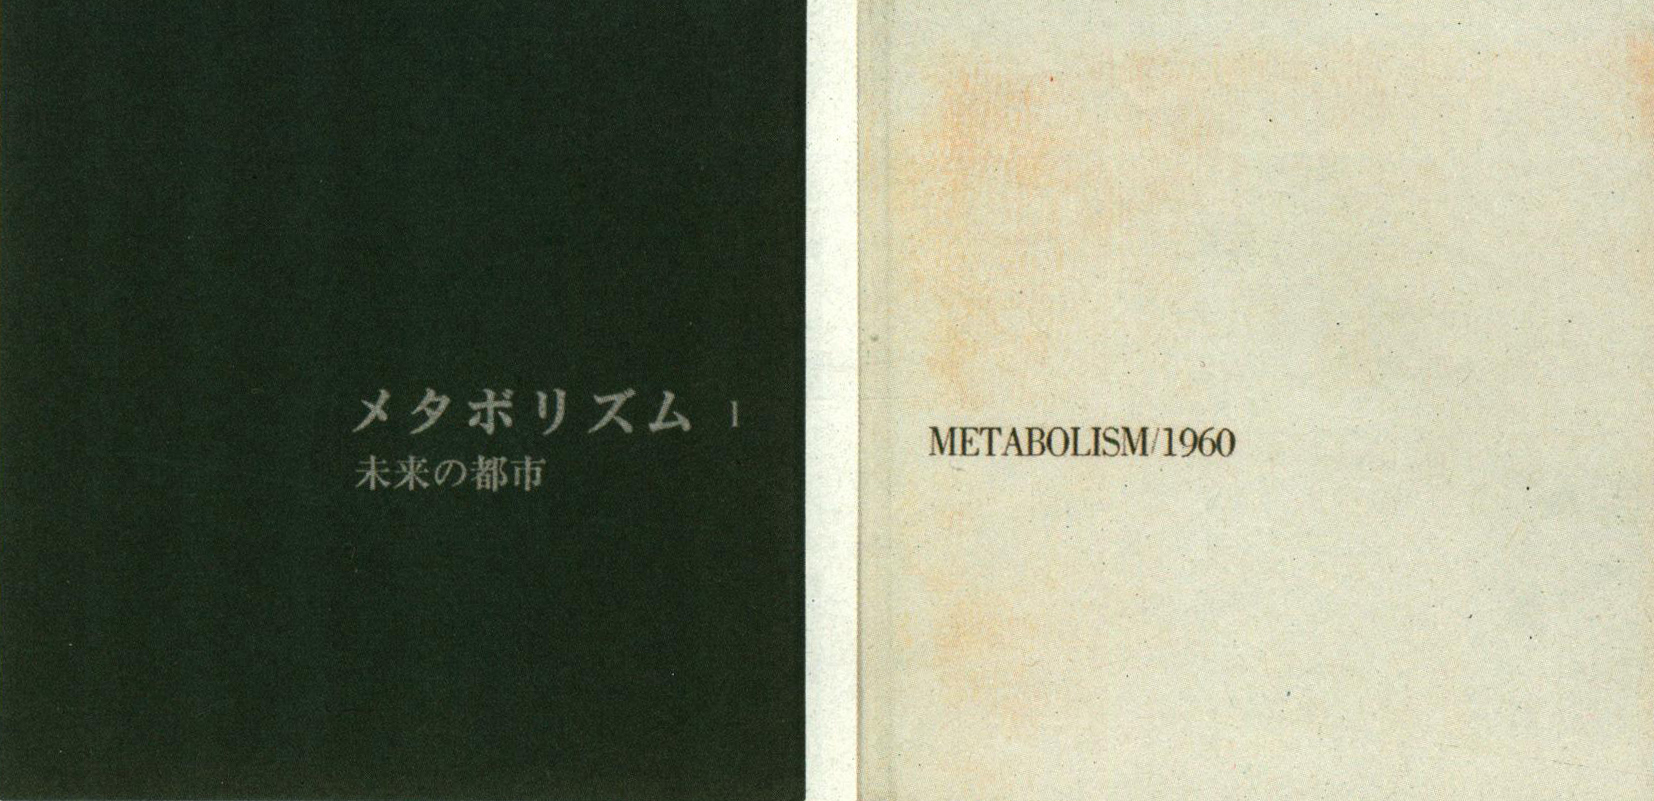 (  Project Japan, pg. 206)  Metabolism 1960, the manifesto written by Metabolists for the 1960 World Design Conference